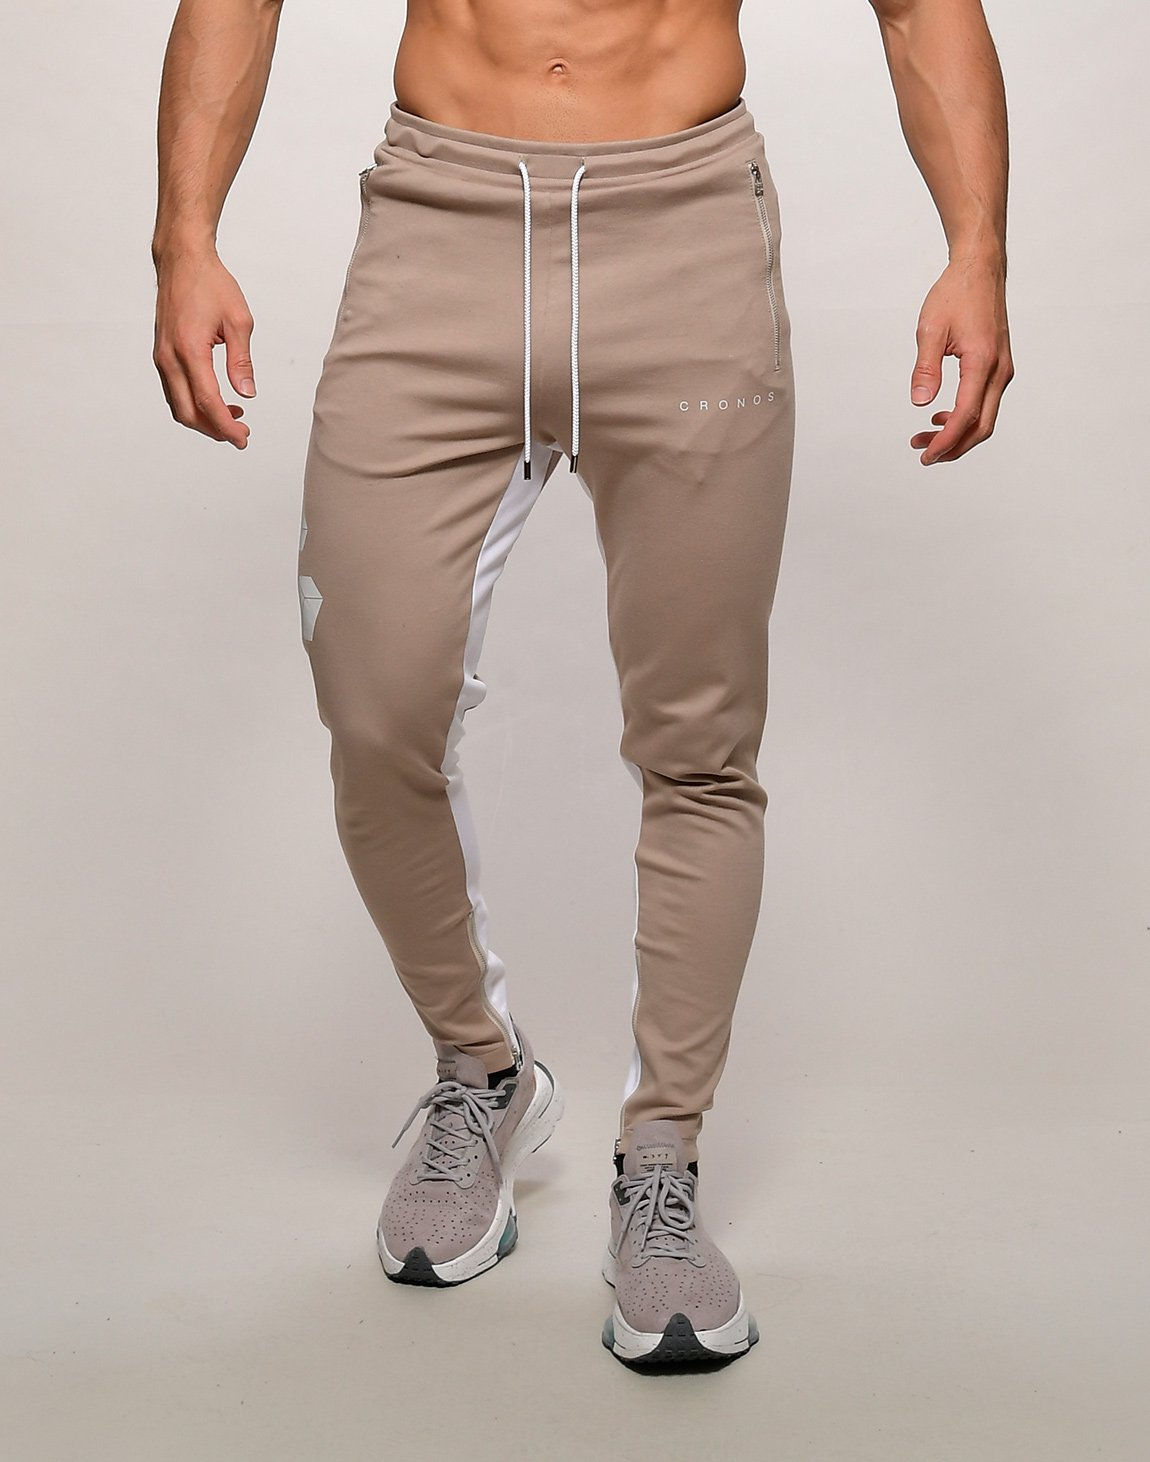 <img class='new_mark_img1' src='https://img.shop-pro.jp/img/new/icons1.gif' style='border:none;display:inline;margin:0px;padding:0px;width:auto;' />CRONOS BIG LOGO SWEET PANTS【BEIGE】